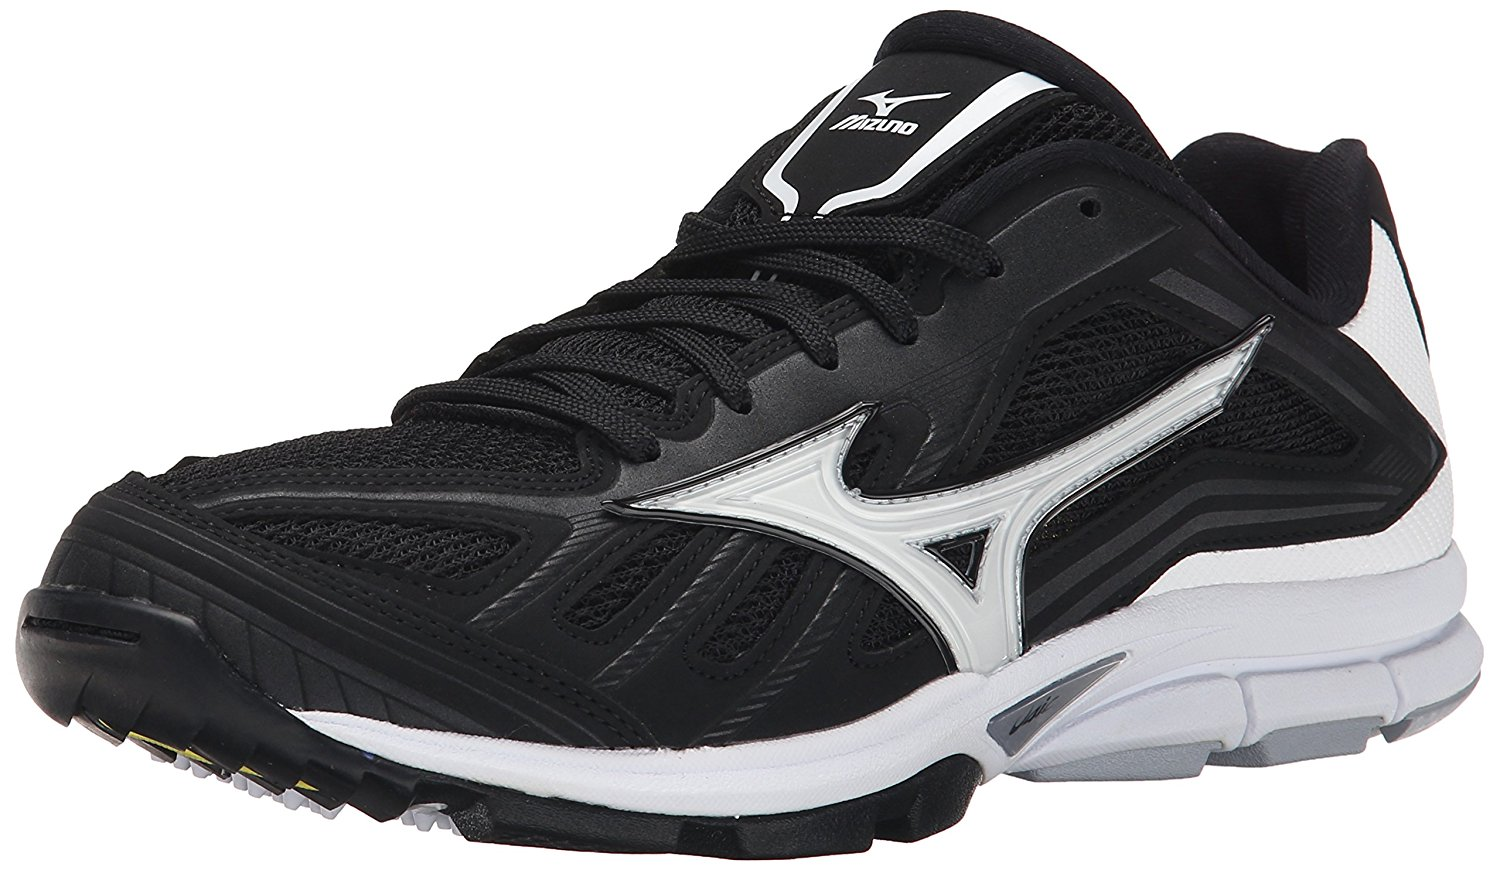 Mixuno White And Black Turf Shoes